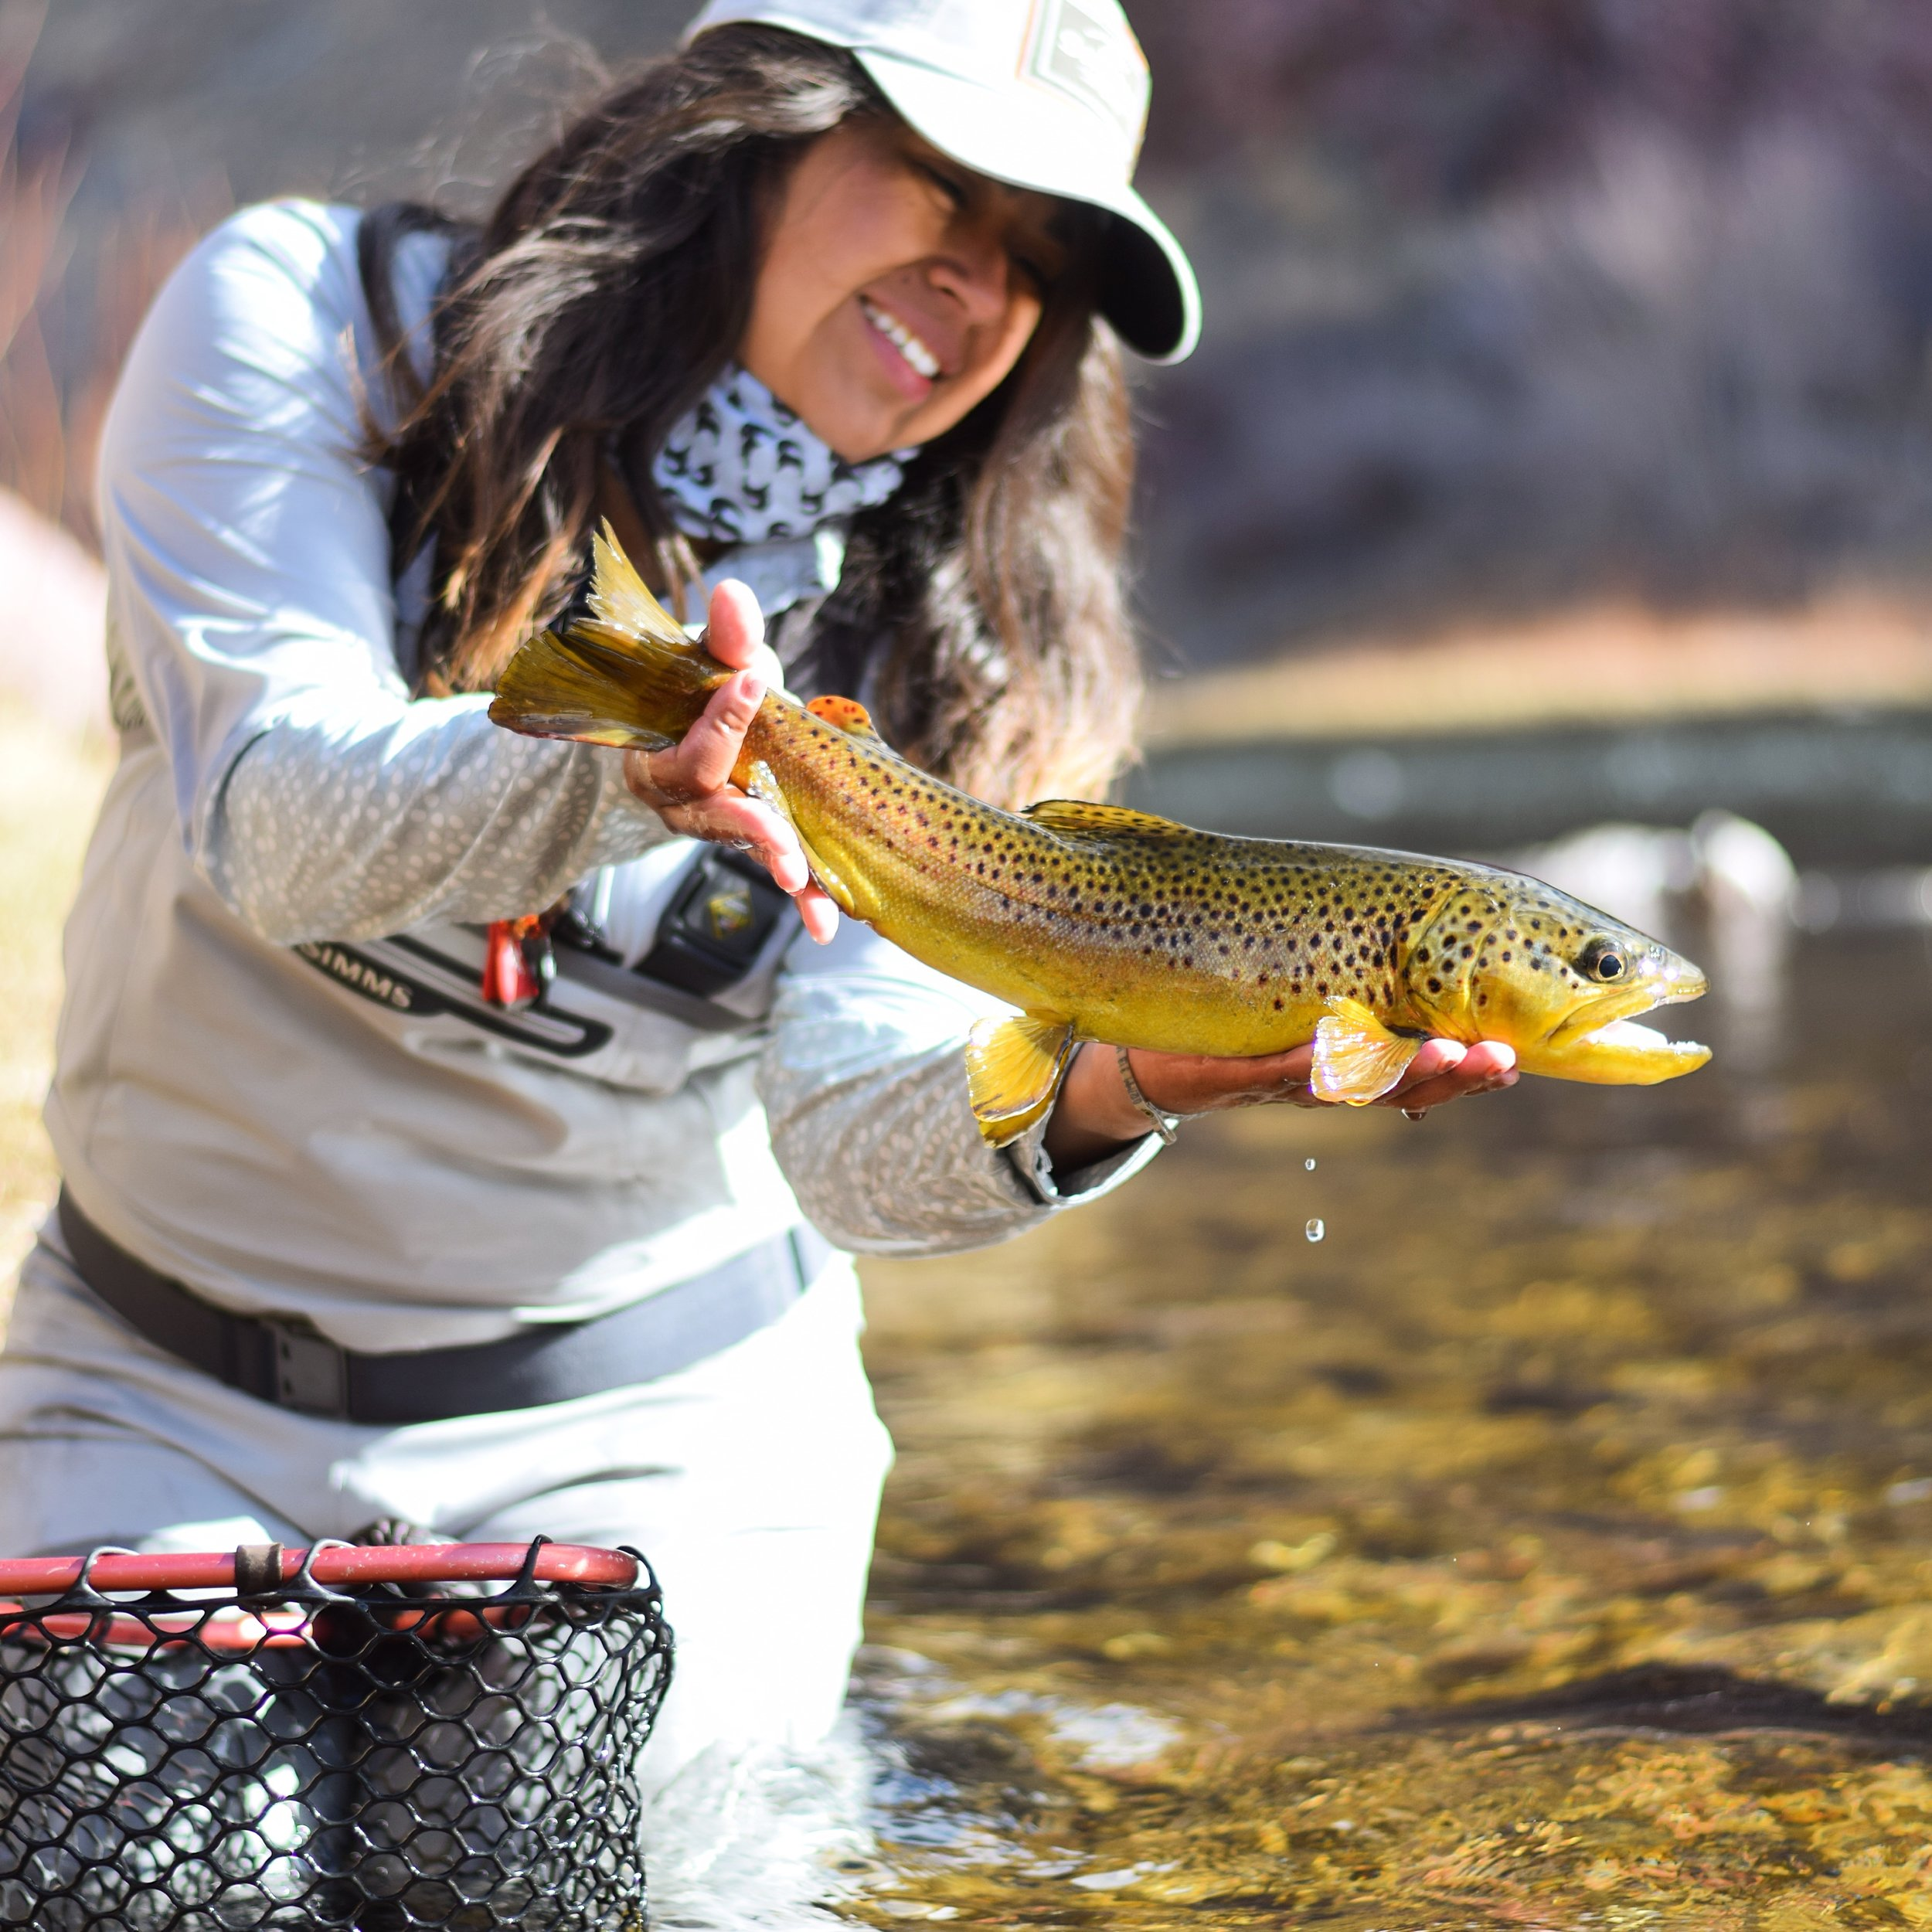 """Rebeca Granillo  Rebeca is a Utah Fly Fishing Guide and founder of the Wasatch Women's Fly Fishing Club. Rebeca's passion for teaching, studying and sharing her love for the sport can often be reflected in her volunteer work. She has been on the Utah Casting for Recovery team, an instructor for the High Country Fly Fishers Women's Clinics, Workshop volunteer at the Wasatch Expo On-Stream Classes and now, she is honored to dedicate her time towards the The Mayfly Project.    """"In fly fishing, we have the opportunity to become astray. Astray from our difficulties, our day to day challenges and sometimes, our greatest fears. That sense of feeling lost from the things that cloud our minds often gives us the opportunity to step back, observe our surroundings and find positive direction. If I can share that with an individual who might benefit from such an experience, I will take the opportunity. And I believe that this is one of those opportunities. I wholeheartedly look forward to being a Mayfly Project Mentor for our local foster kids. I have a feeling that this sport will heal their hearts and shape their futures into the brightest of ways."""" - Rebeca Granillo"""